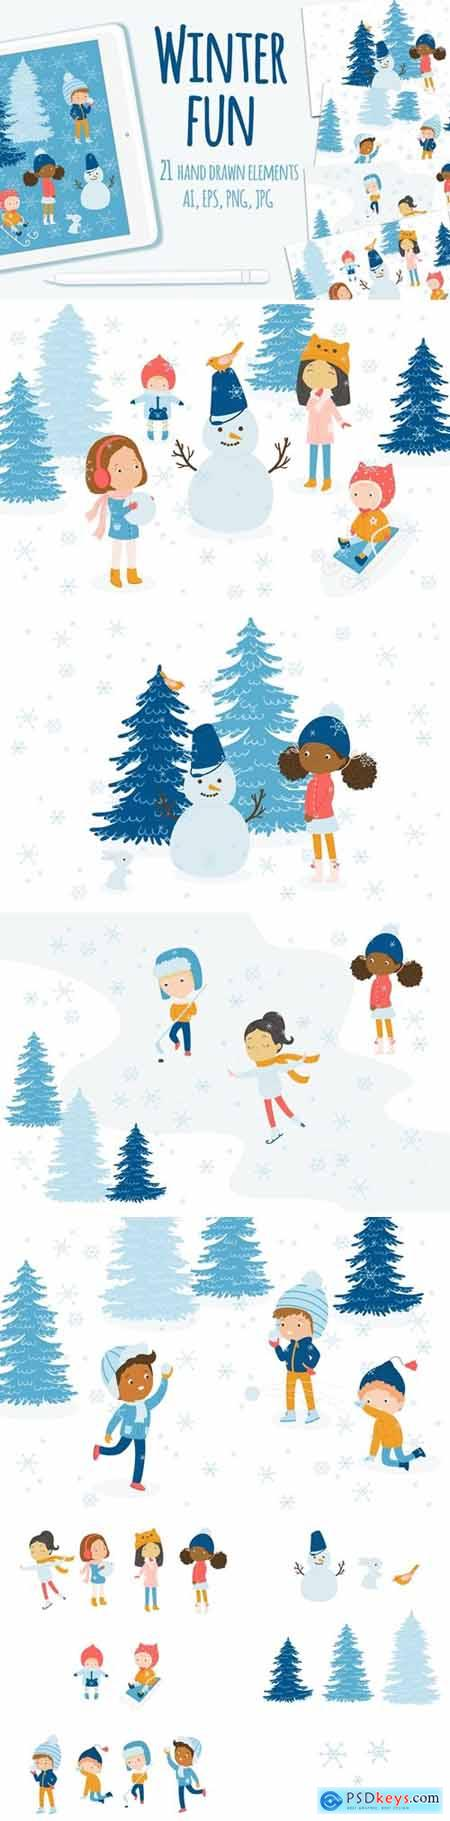 Winter Fun Vector Graphic Set